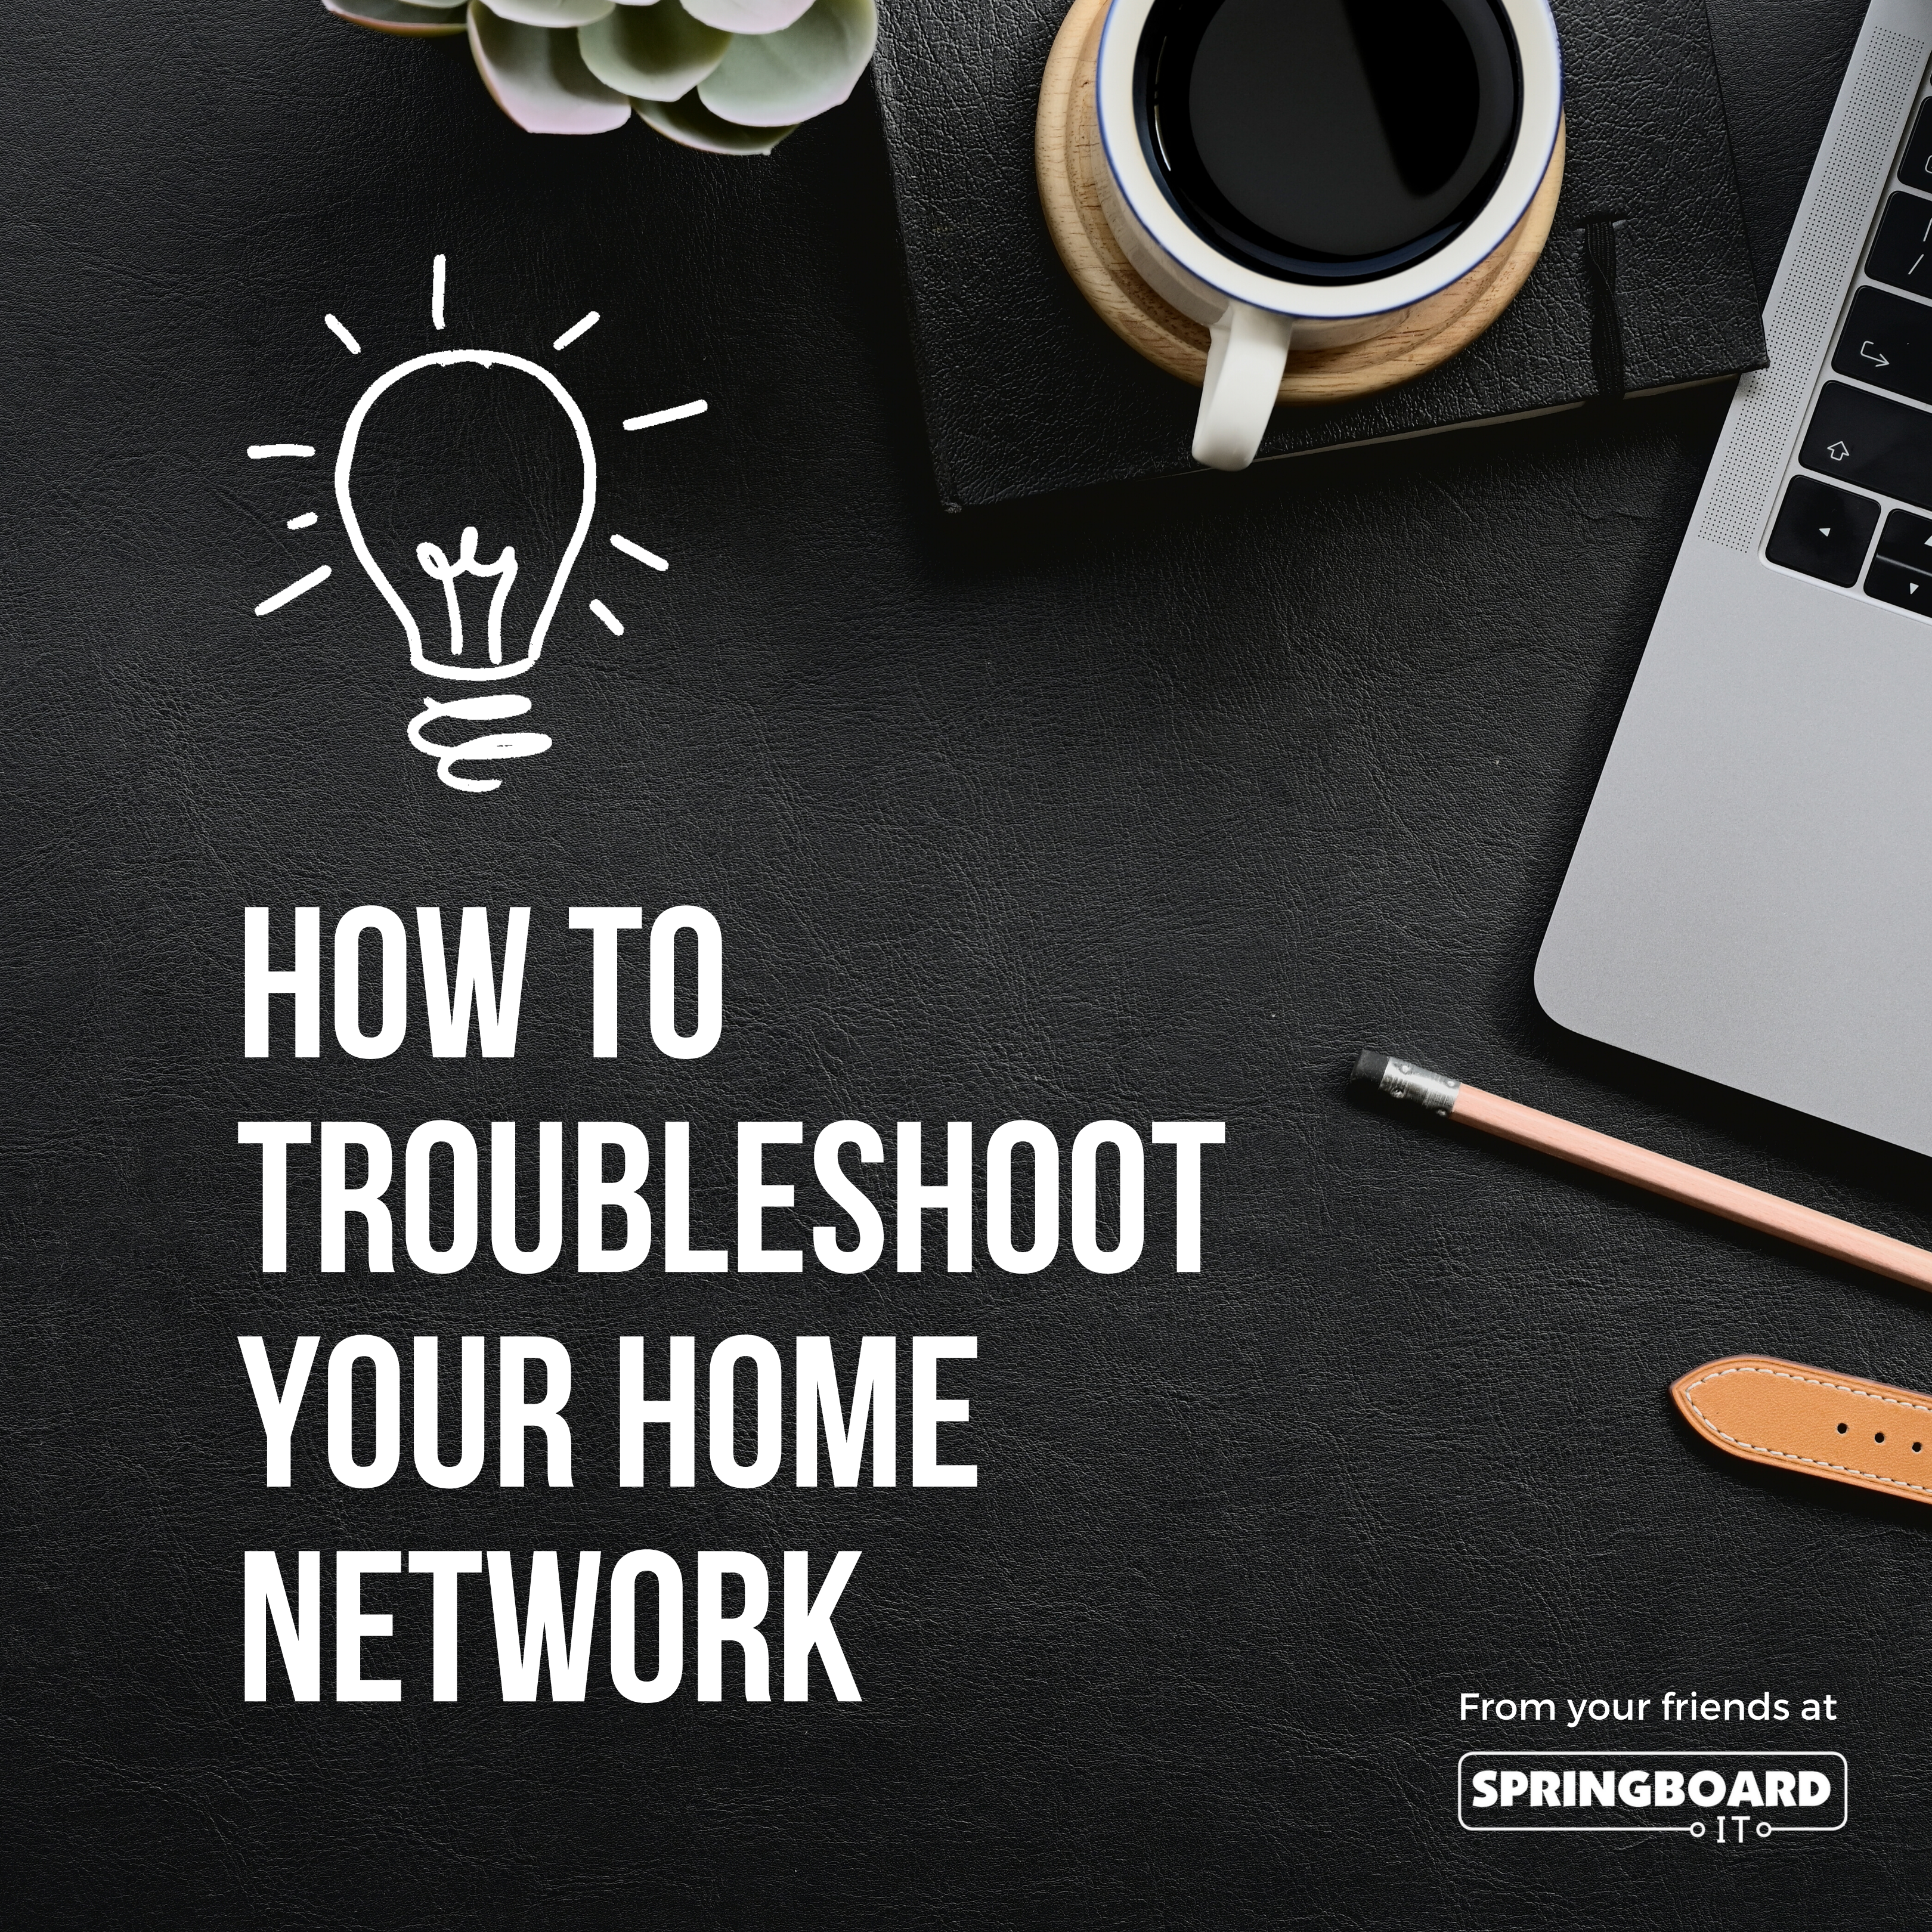 How To Troubleshoot Your Home Network